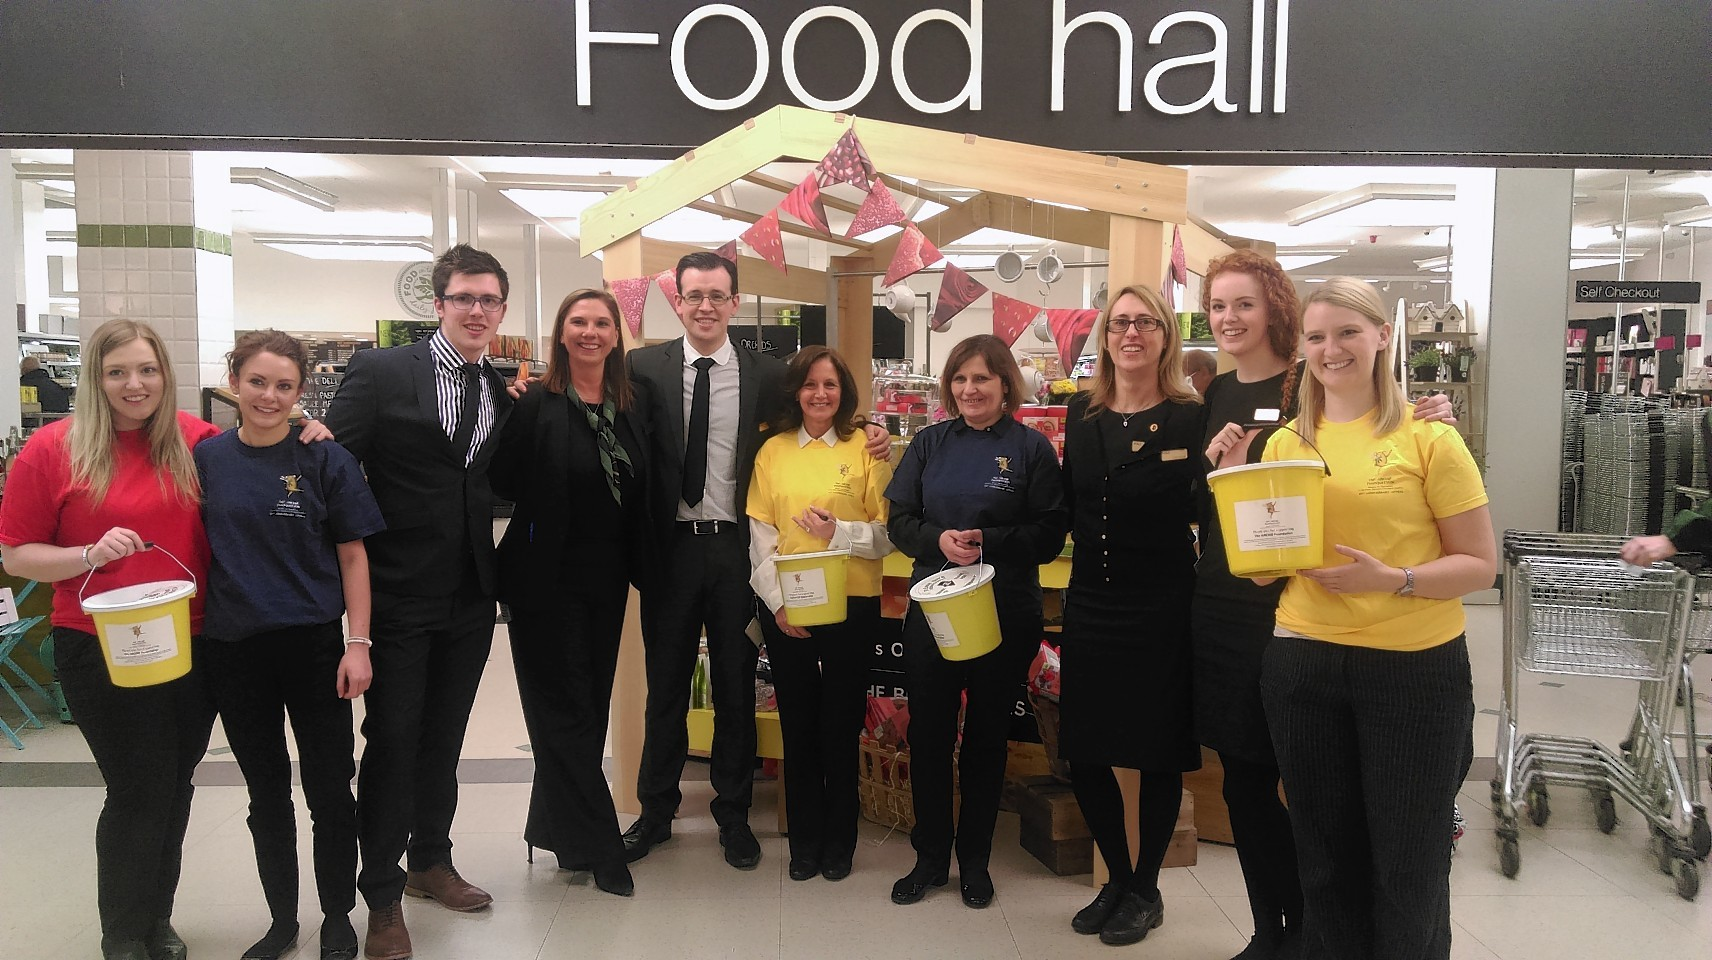 Toni Ross, Claire Mead, Andrew McCurry, Katherine Pace, Jon Cameron, Liz Macrae, Joyce Shuttleworth, Chloe Hutchison, Caroline Lamont, and Claire Bush at M&S